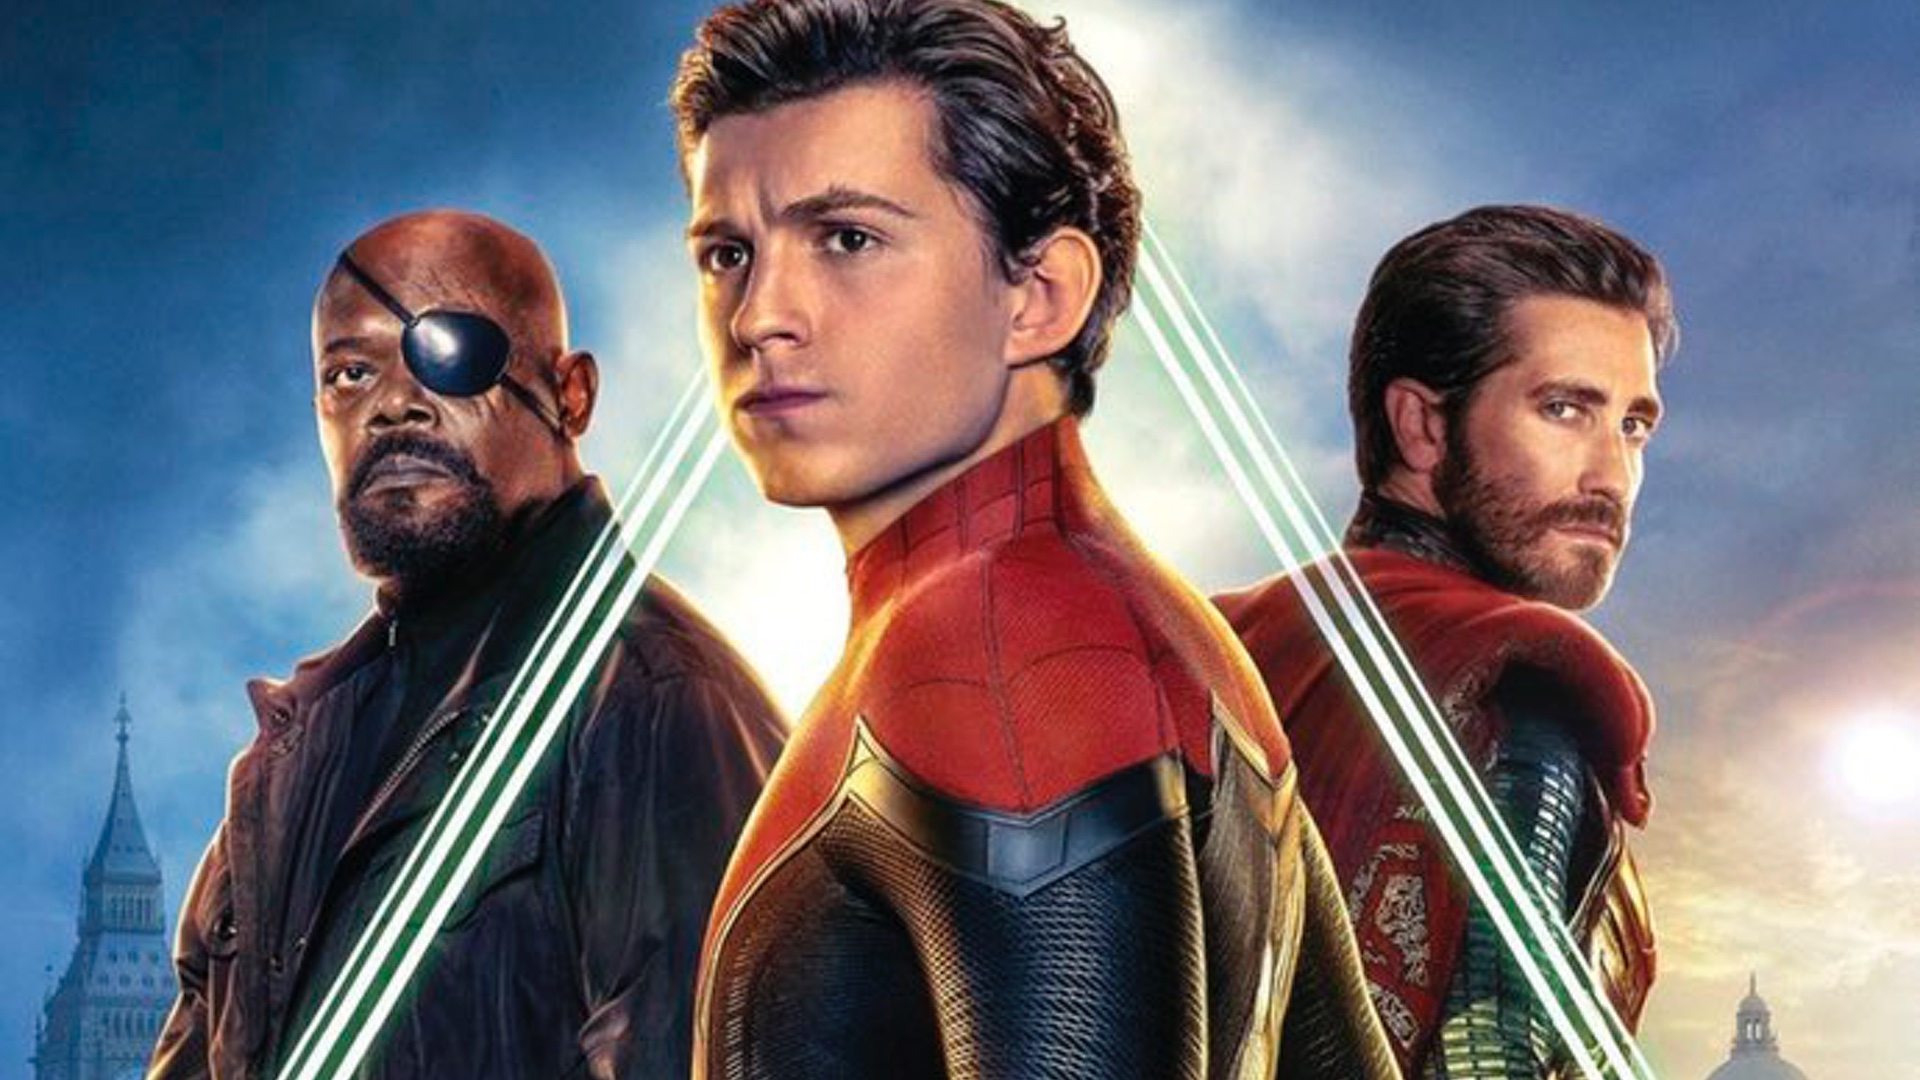 Six New Posters For Marvel's SPIDER-MAN: FAR FROM HOME Focus on